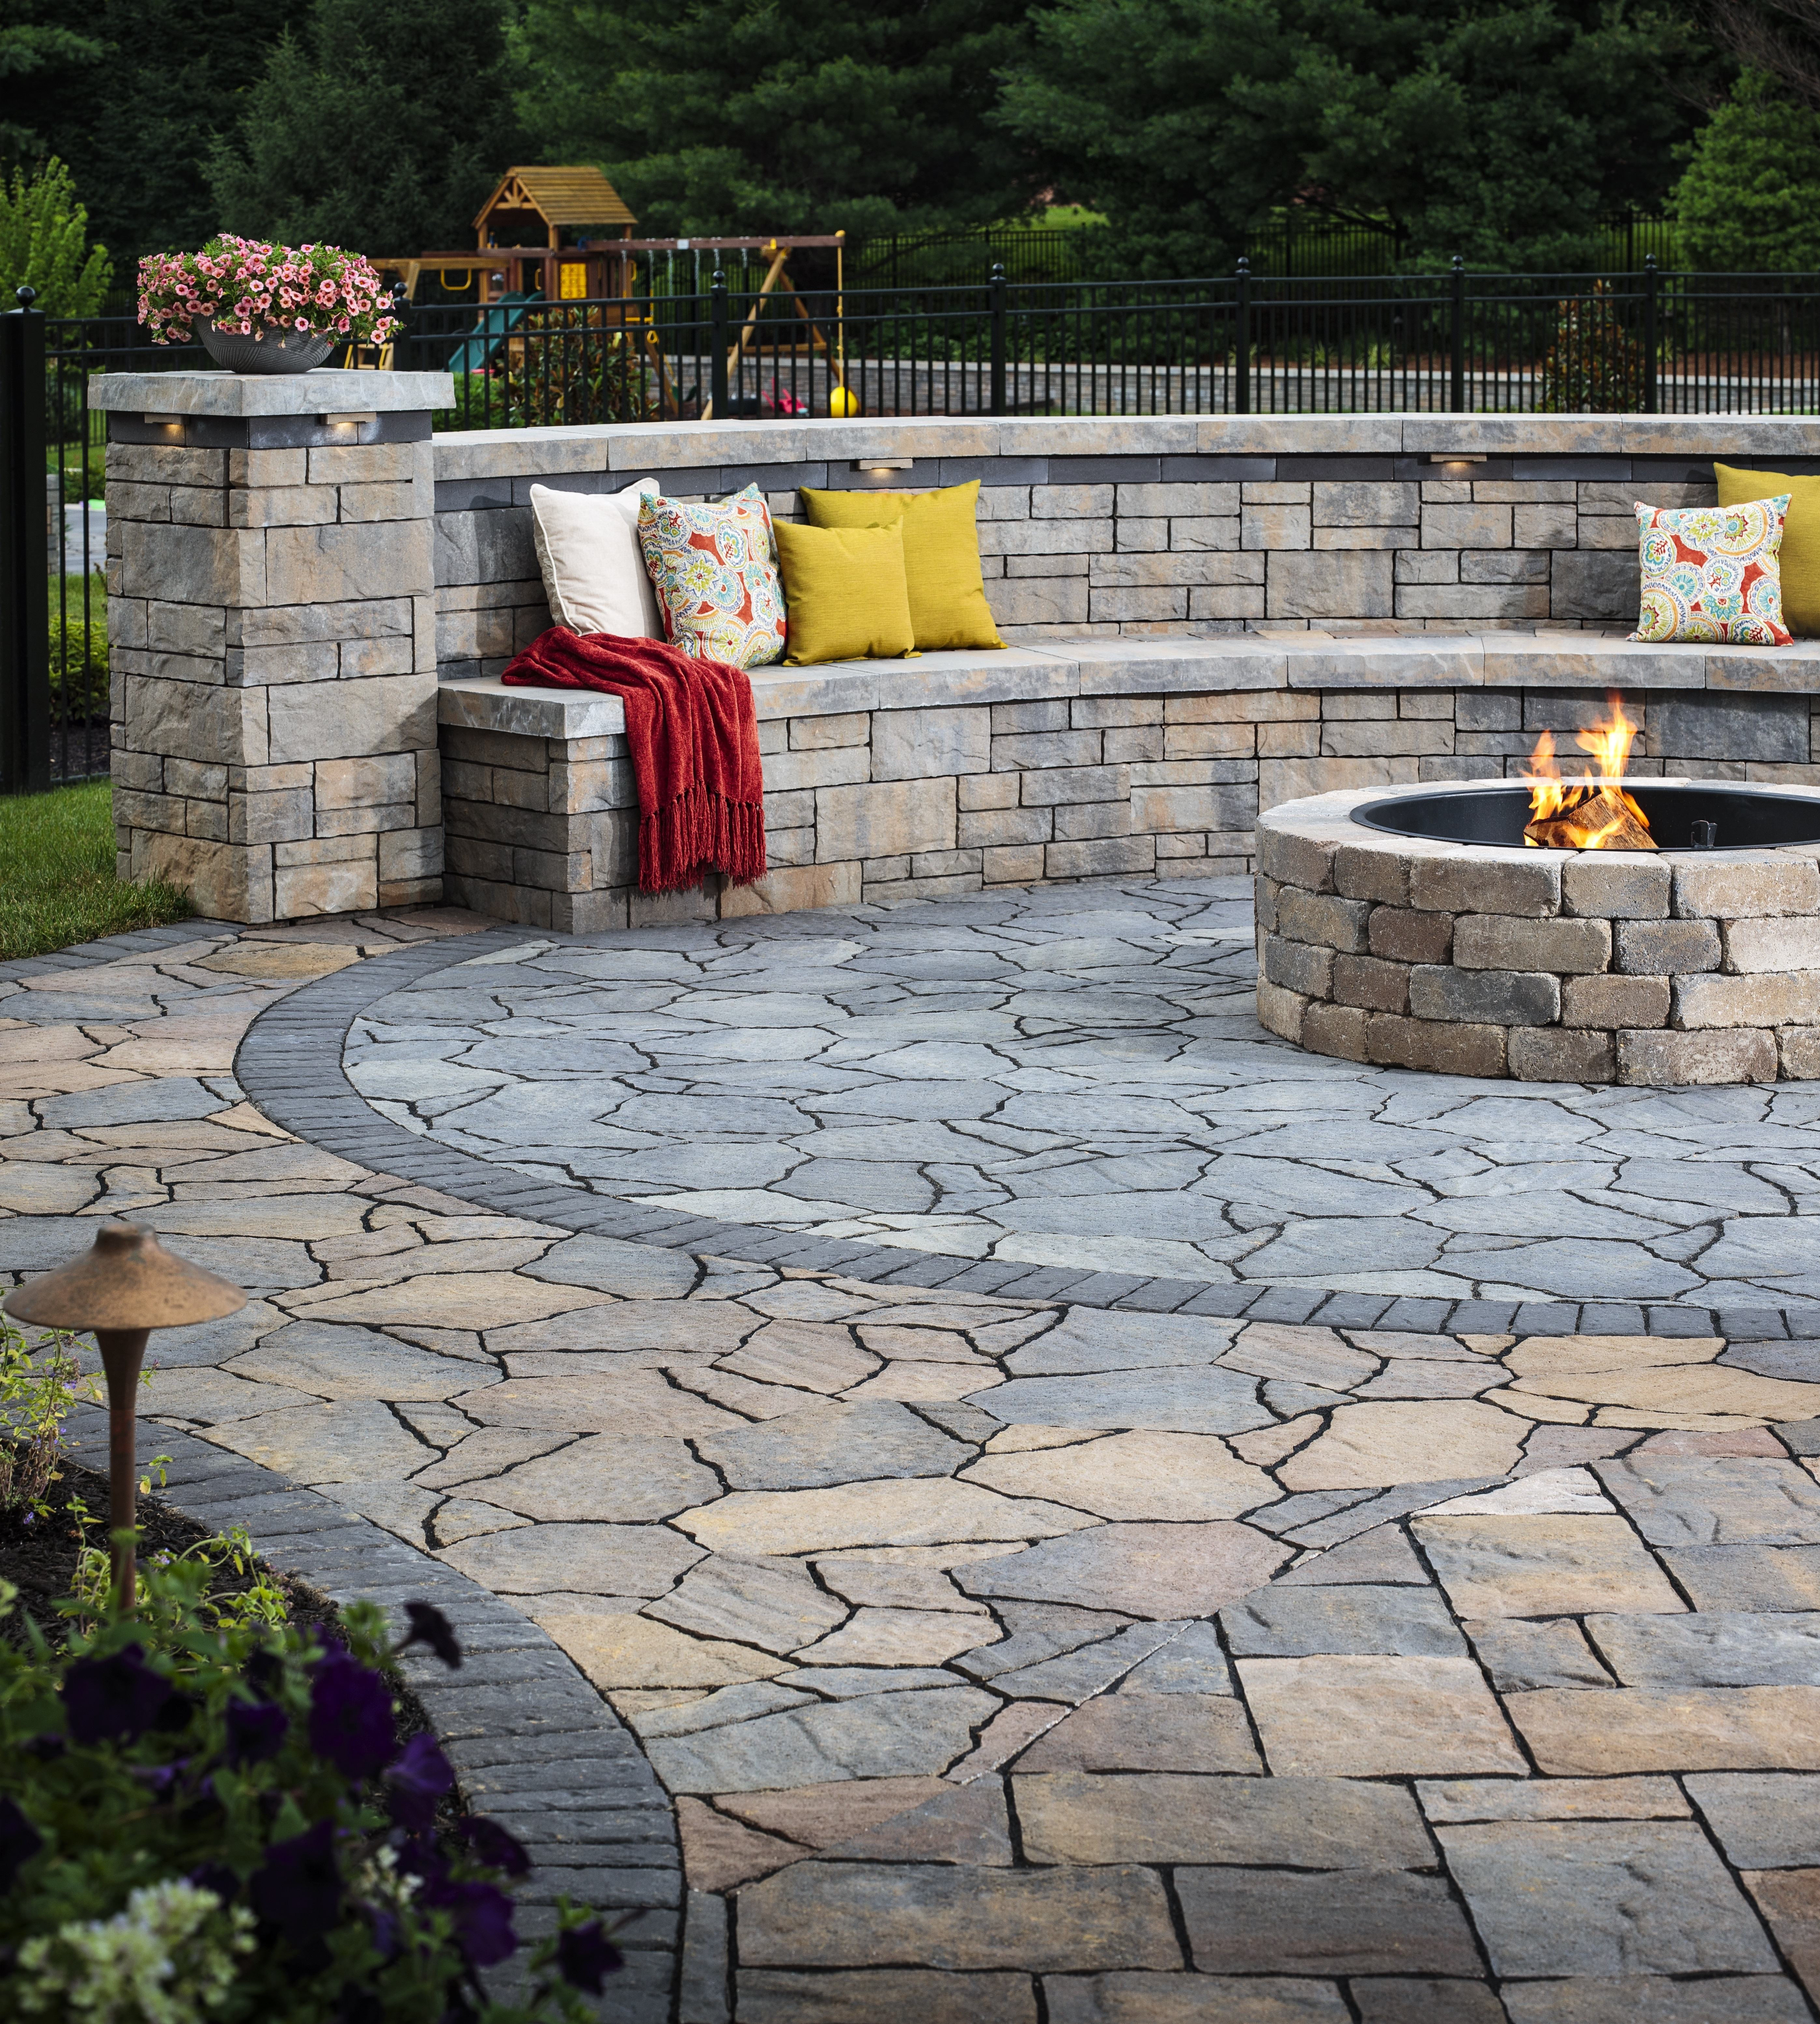 https www businesswire com news home 20201201005007 en belgard c2 ae reveals 2021 color of the year e2 80 93 marigold